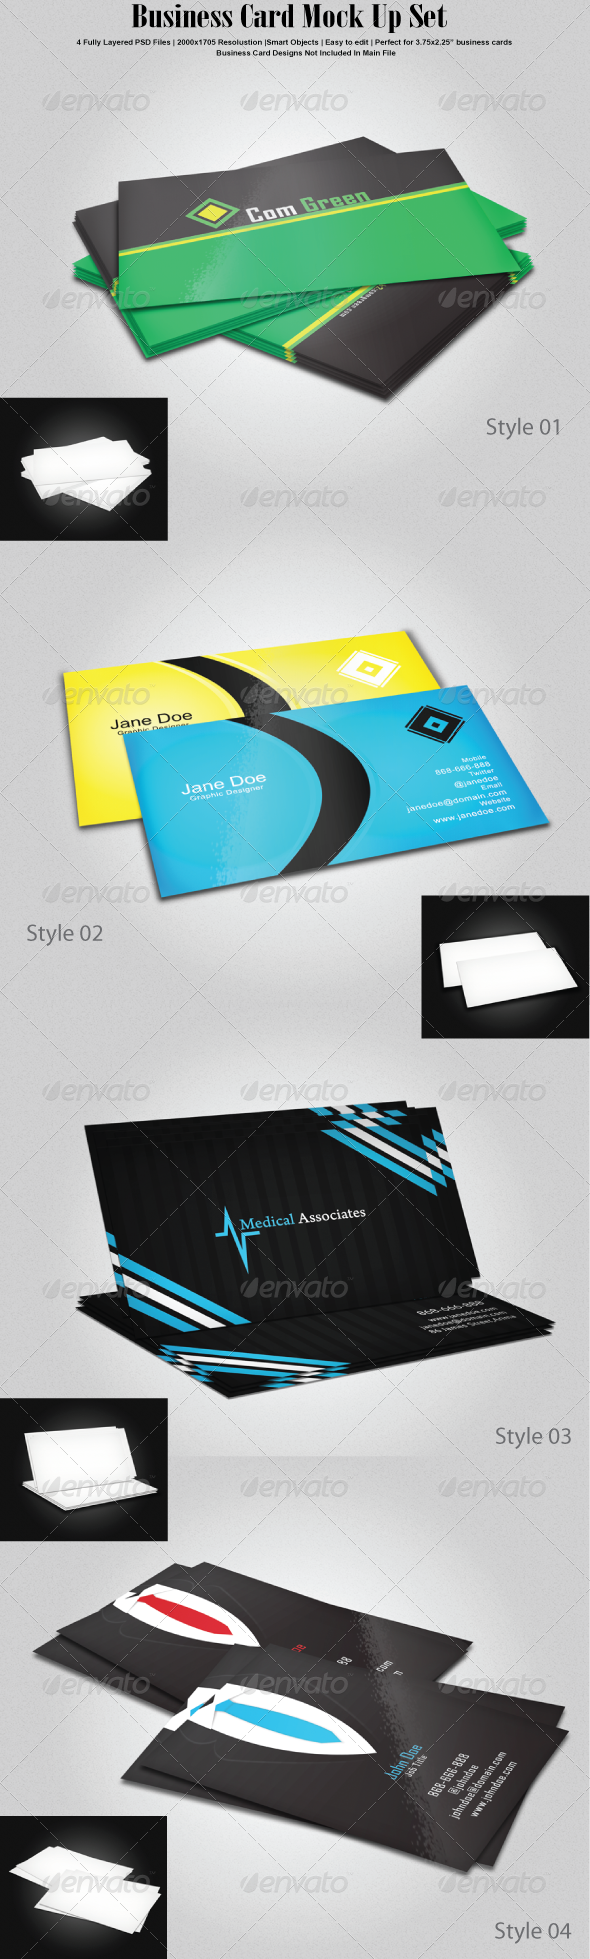 GraphicRiver Business Card Mock Up Set 6812401